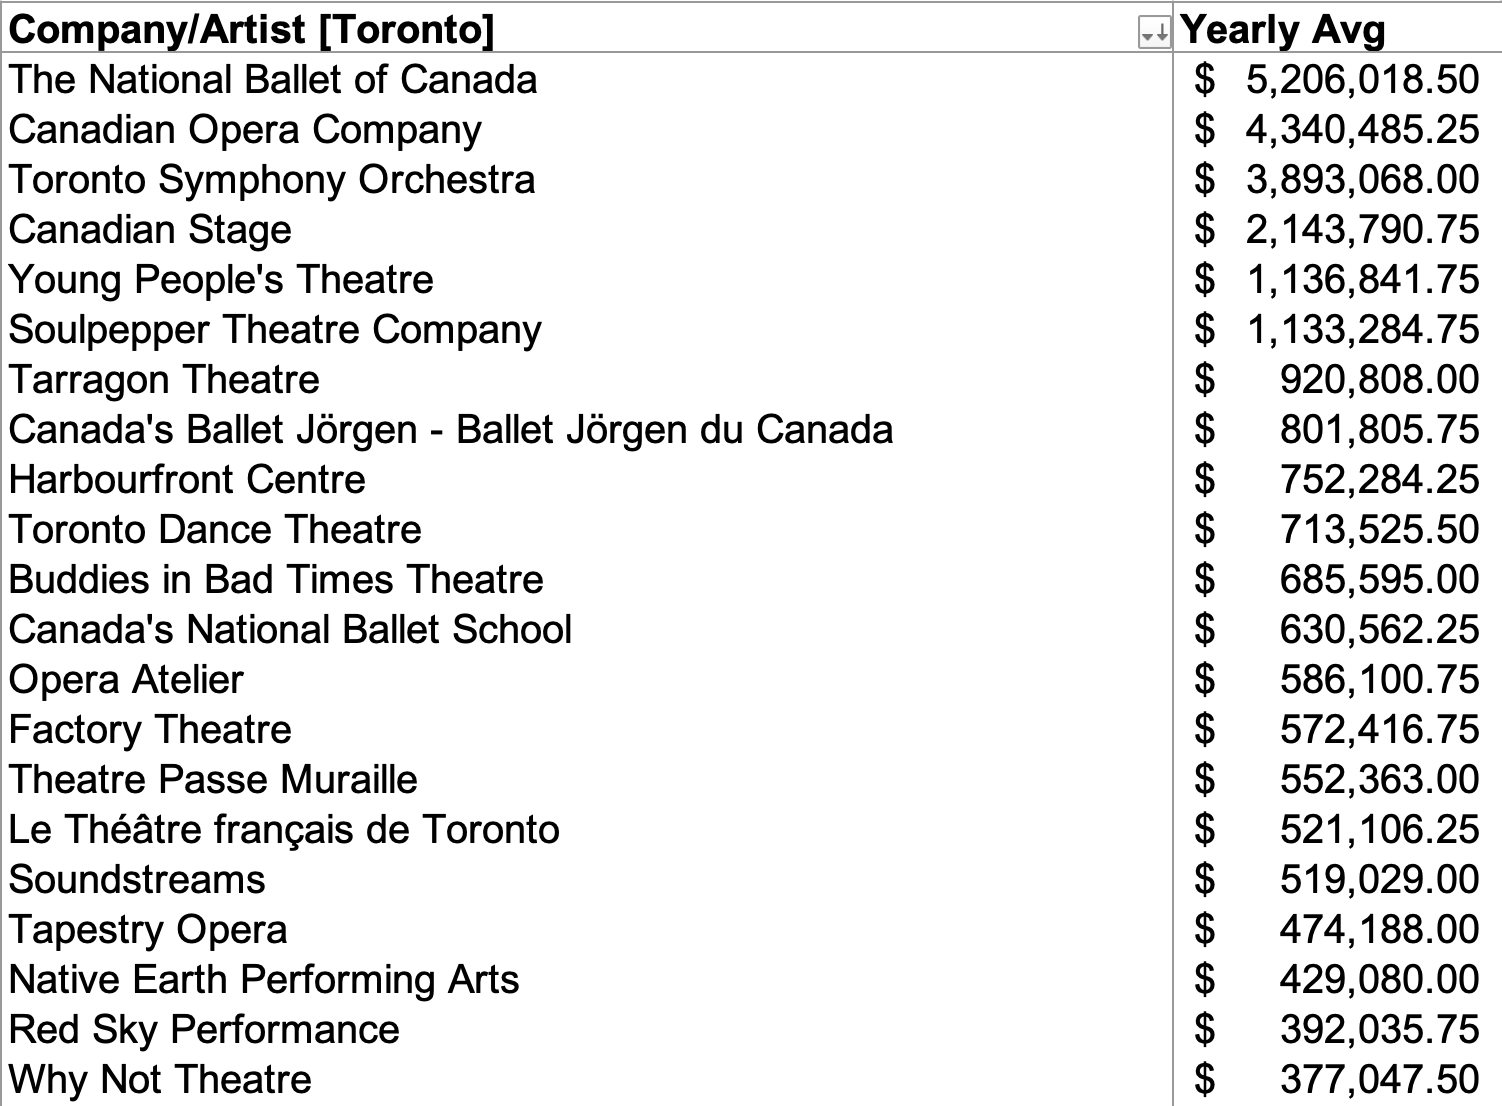 graphic of canadian theatres and they're yearly income